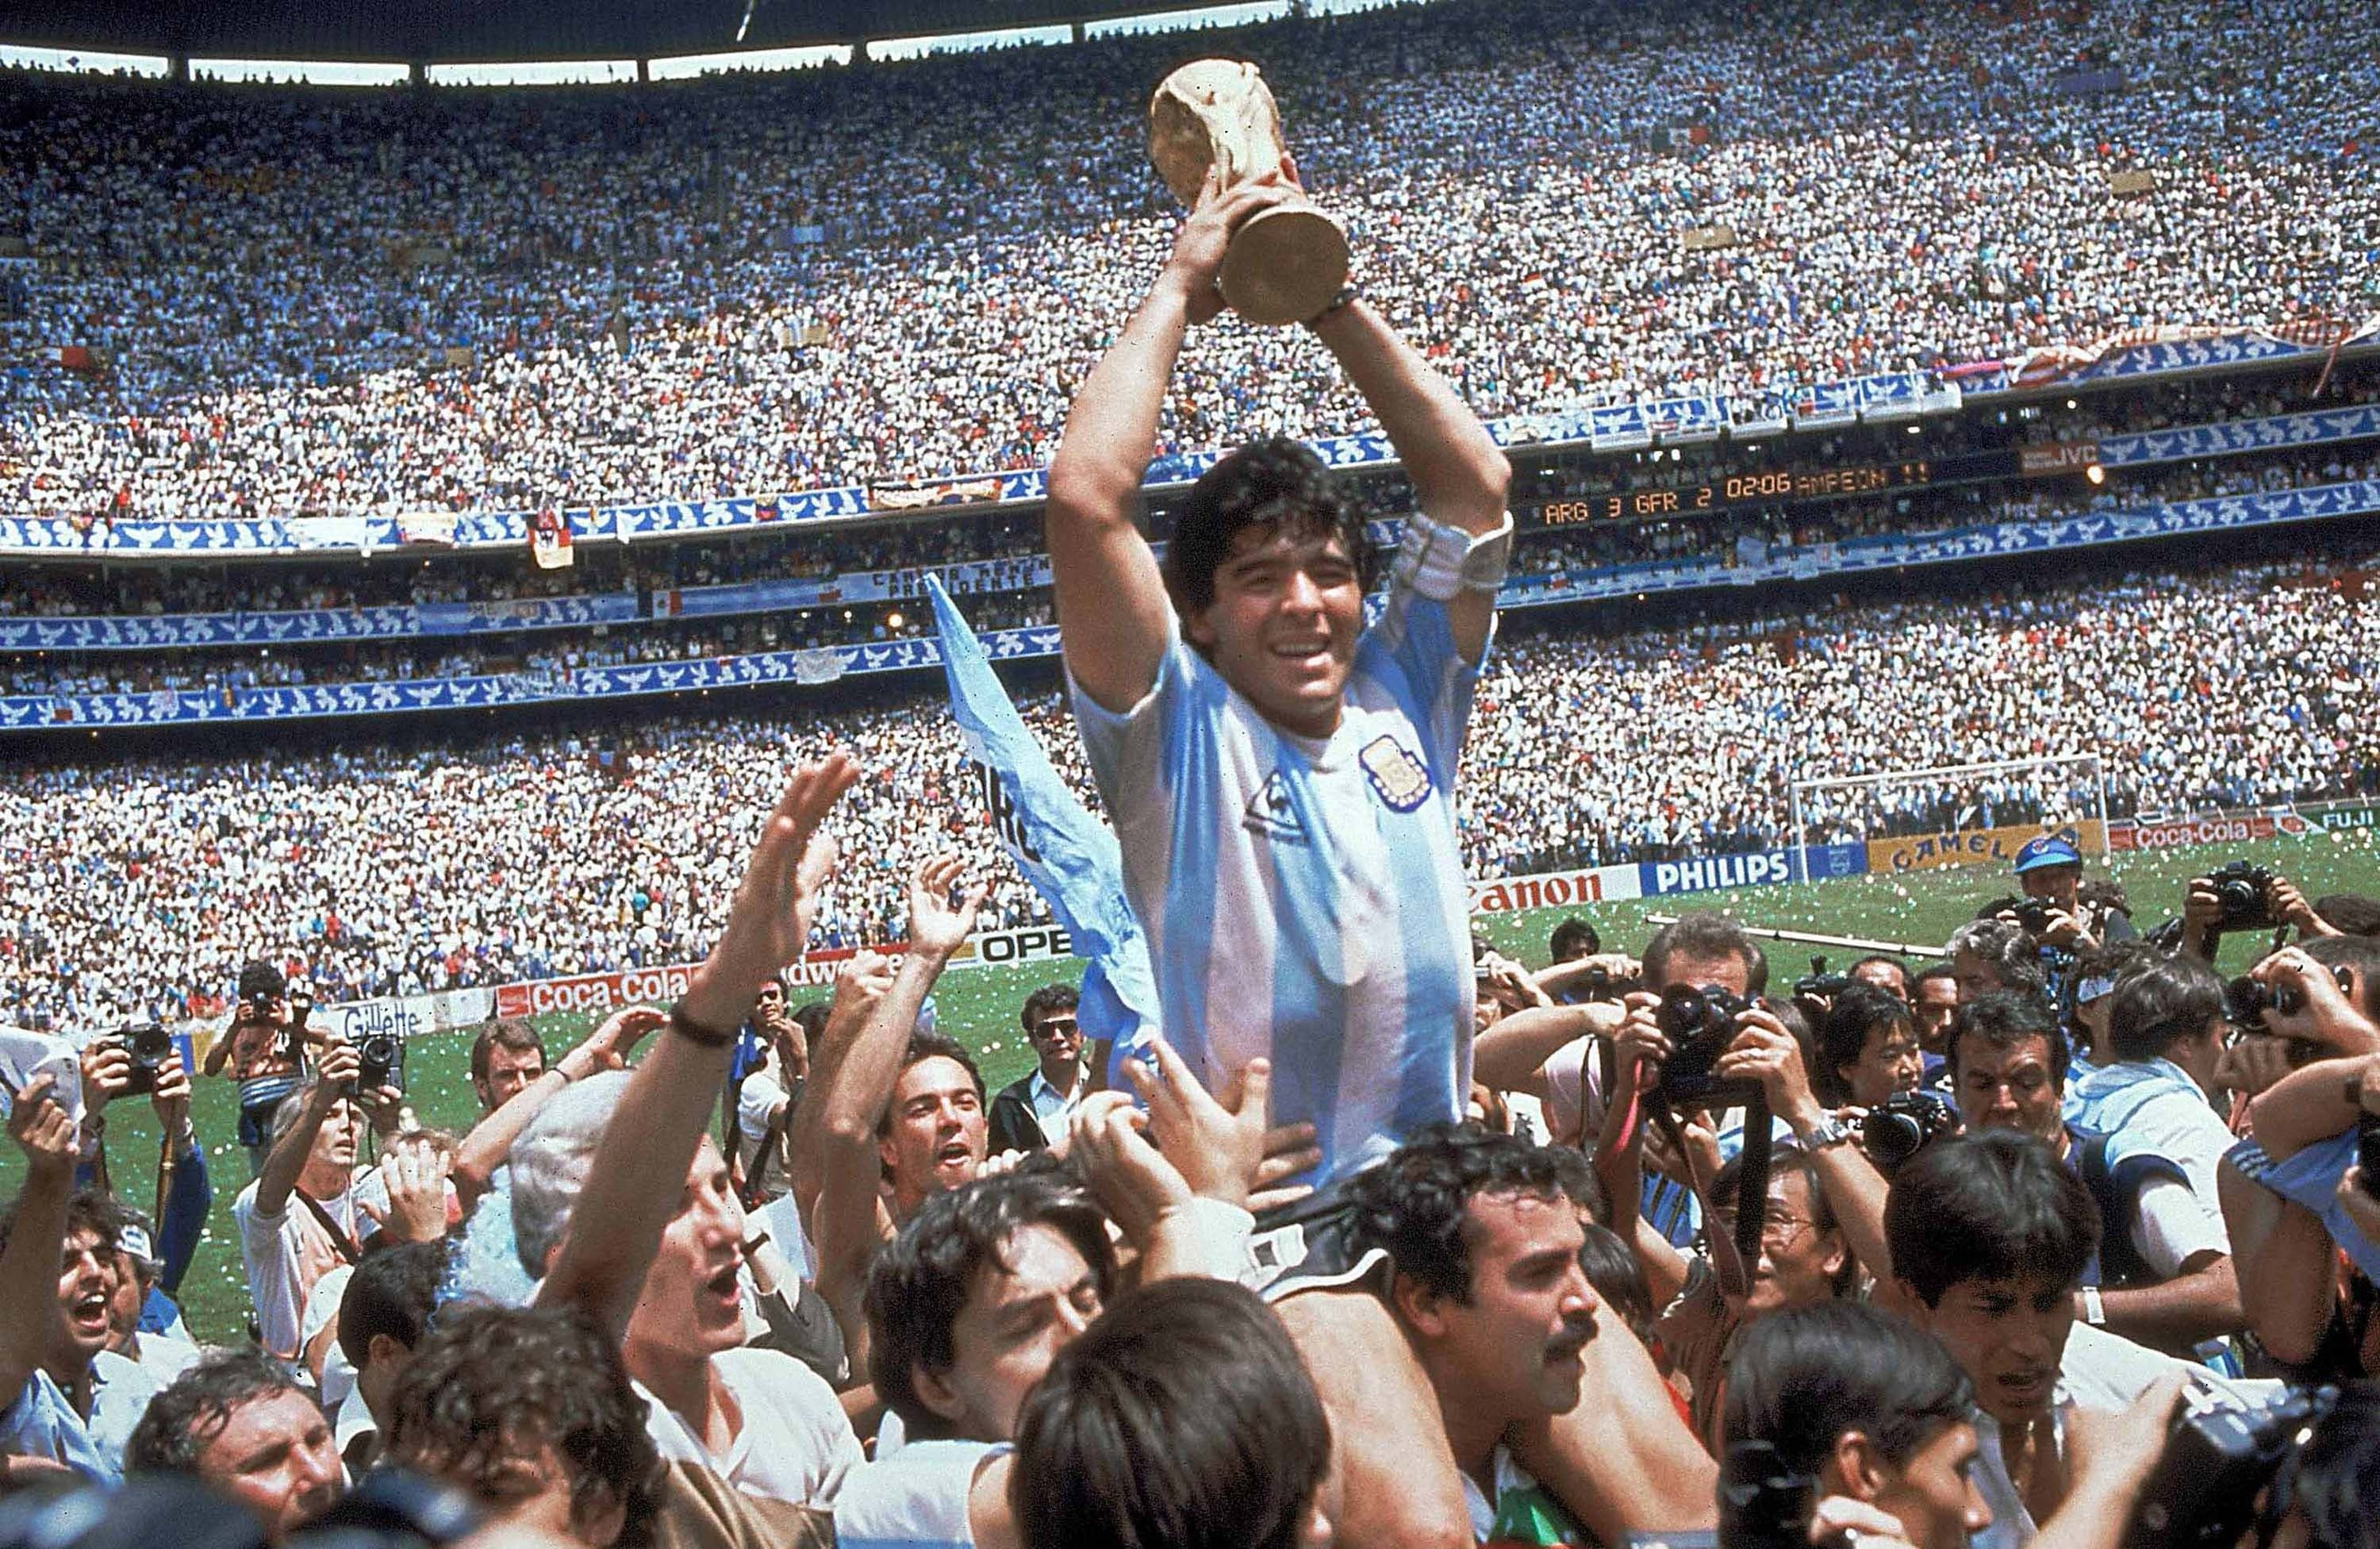 In this June 29, 1986, file photo, Diego Maradona, holds up the trophy, after Argentina beat West Germany 3-2 in their World Cup soccer final match, at the Atzeca Stadium, in Mexico City.